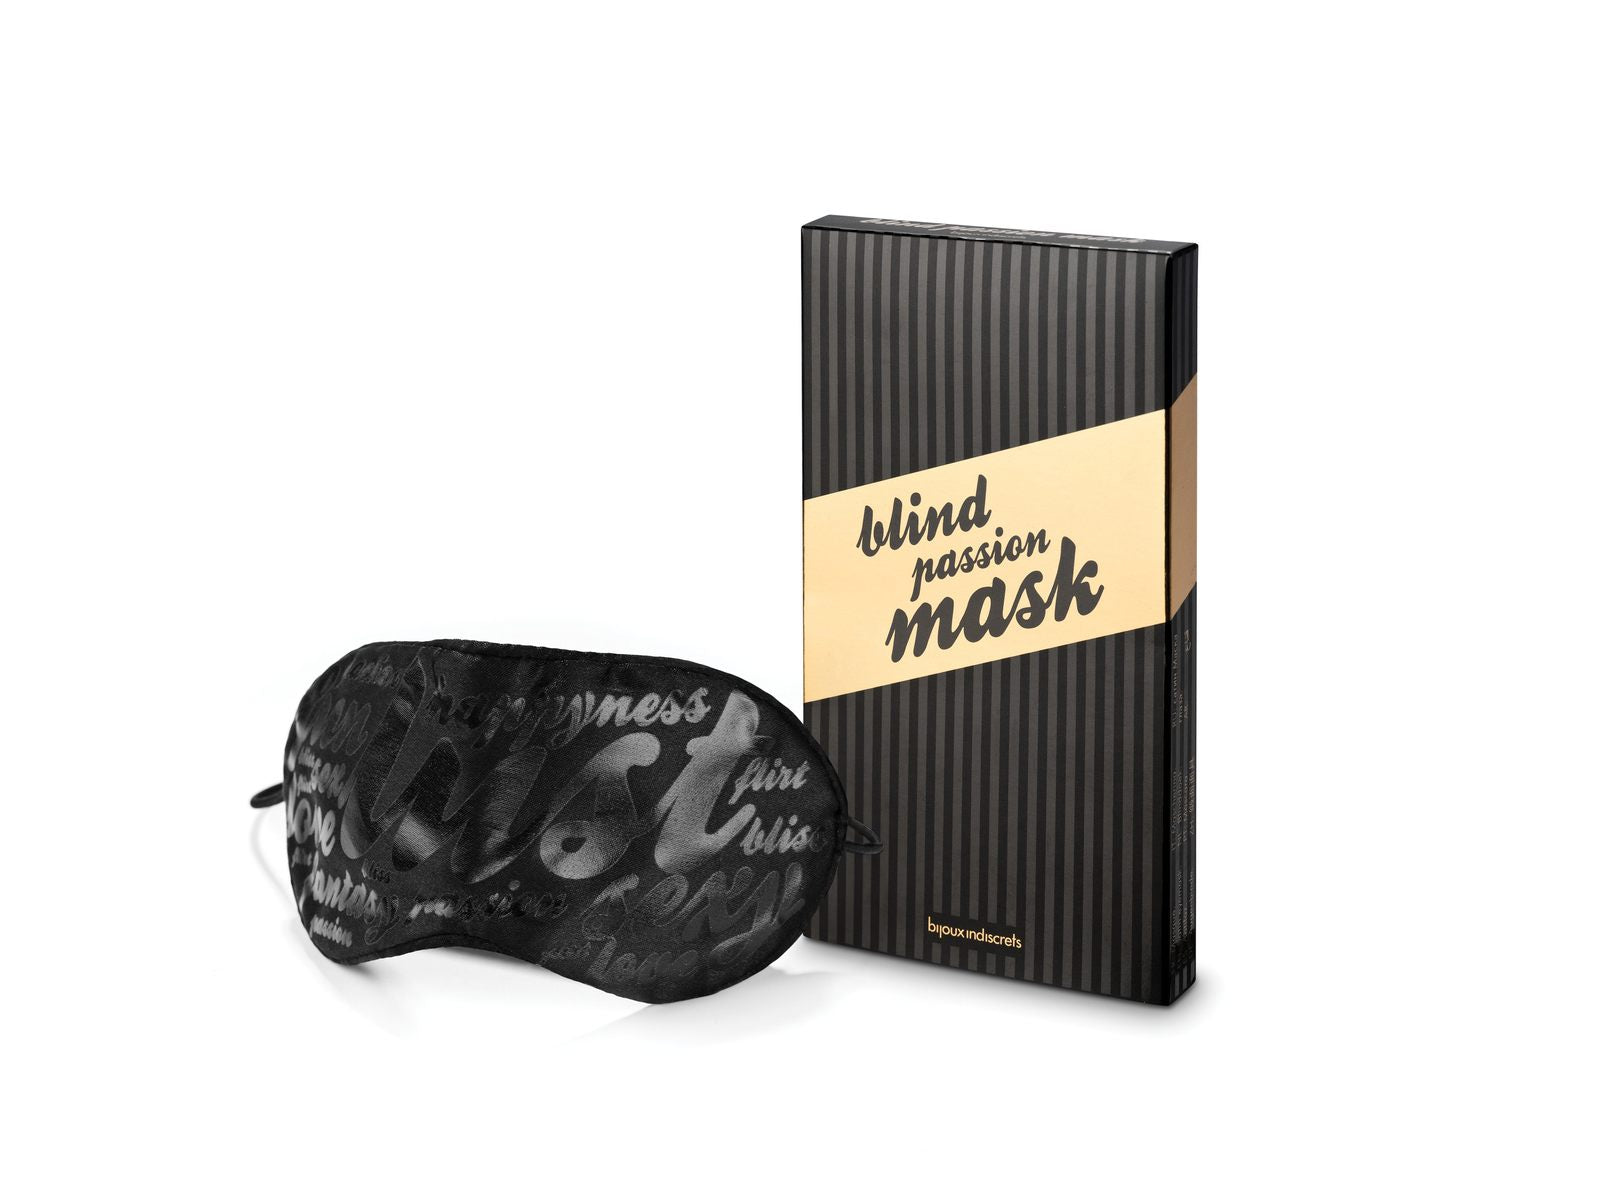 la-vie-sexuelle - Blind passion mask for foreplay - Bijoux Indiscrets - mask